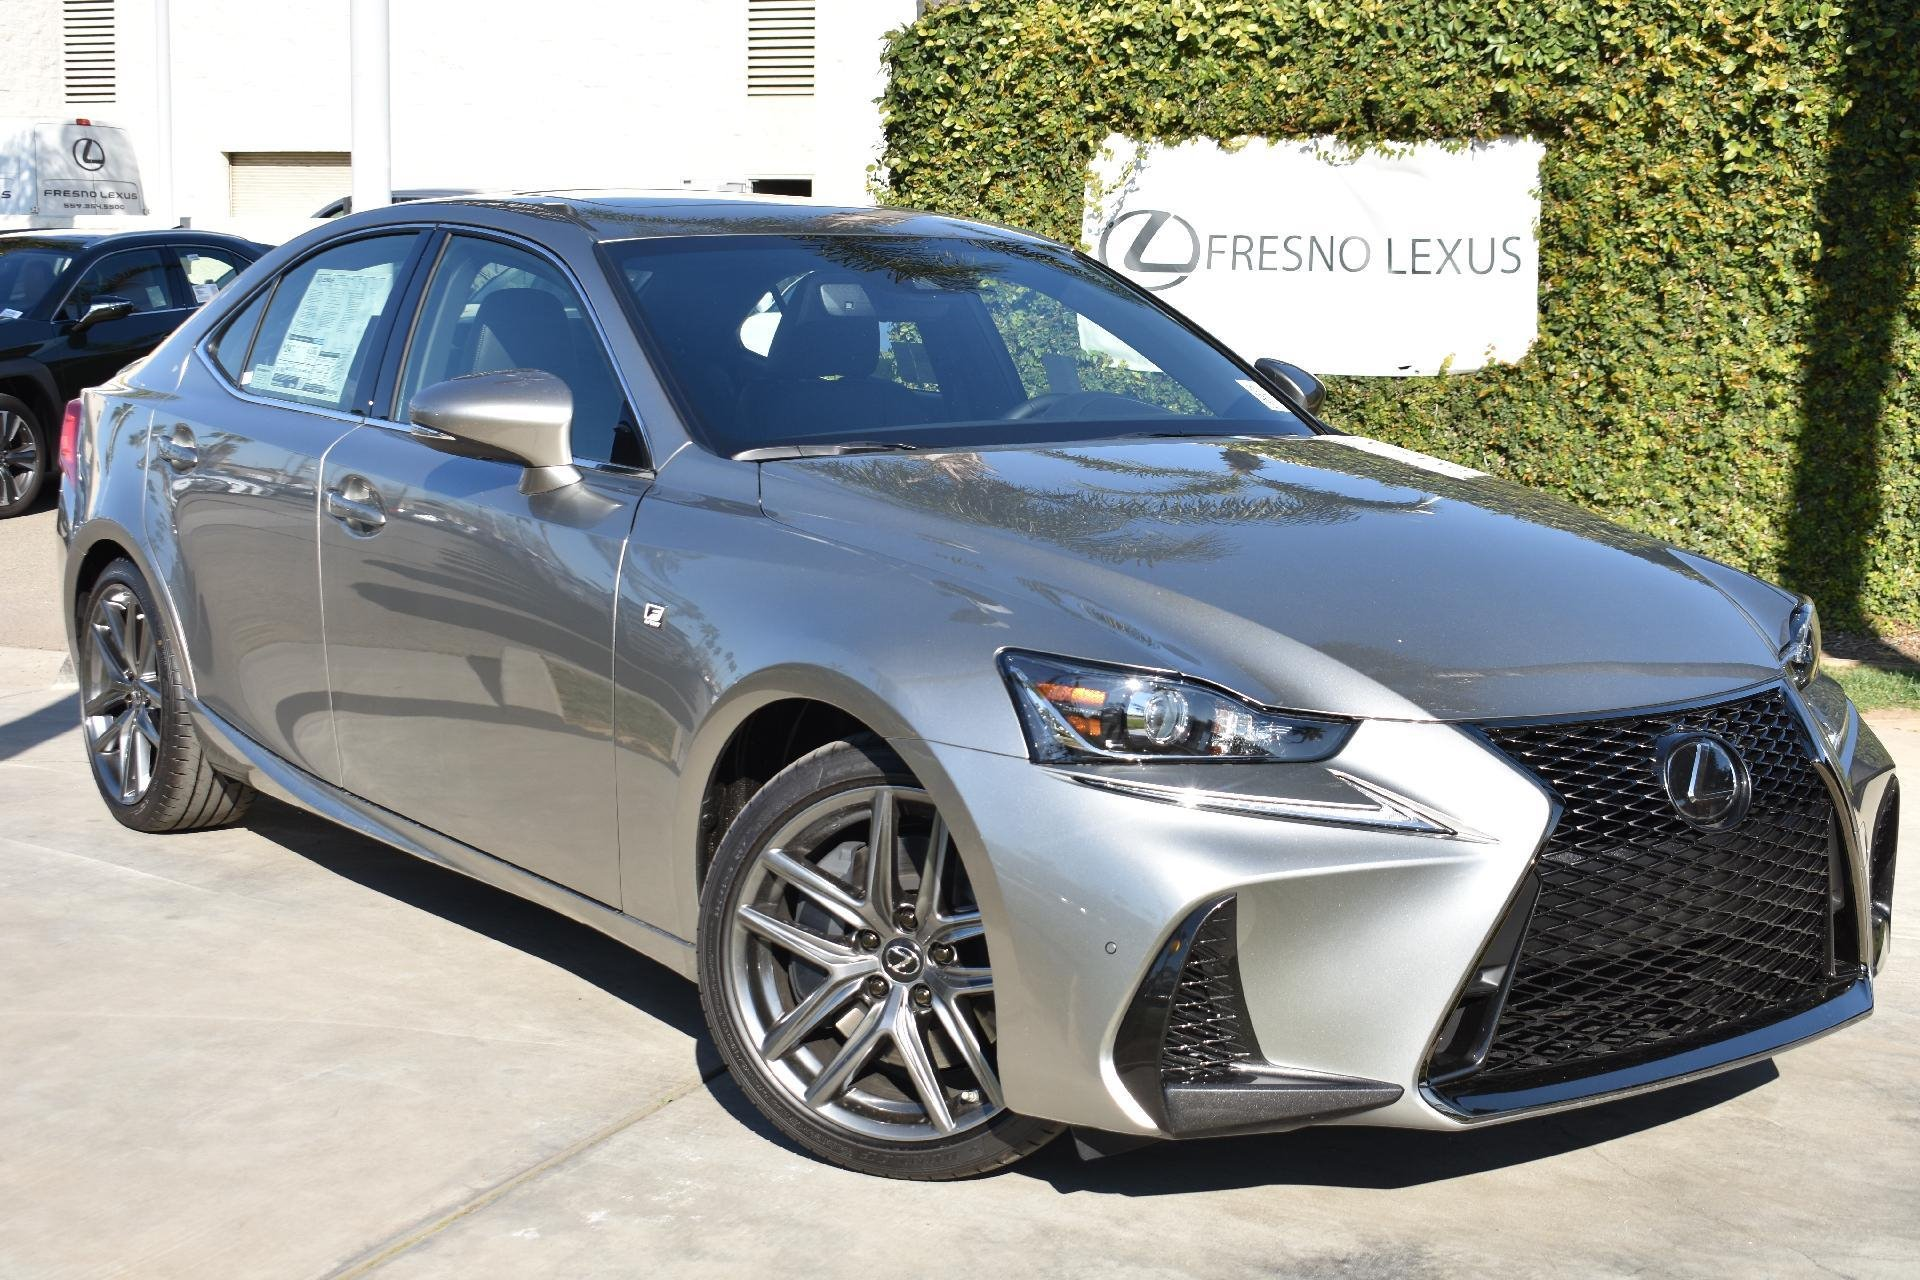 New 2019 Lexus IS 300 Base for sale $41,010 at M and V Leasing in Brooklyn NY 11223 1